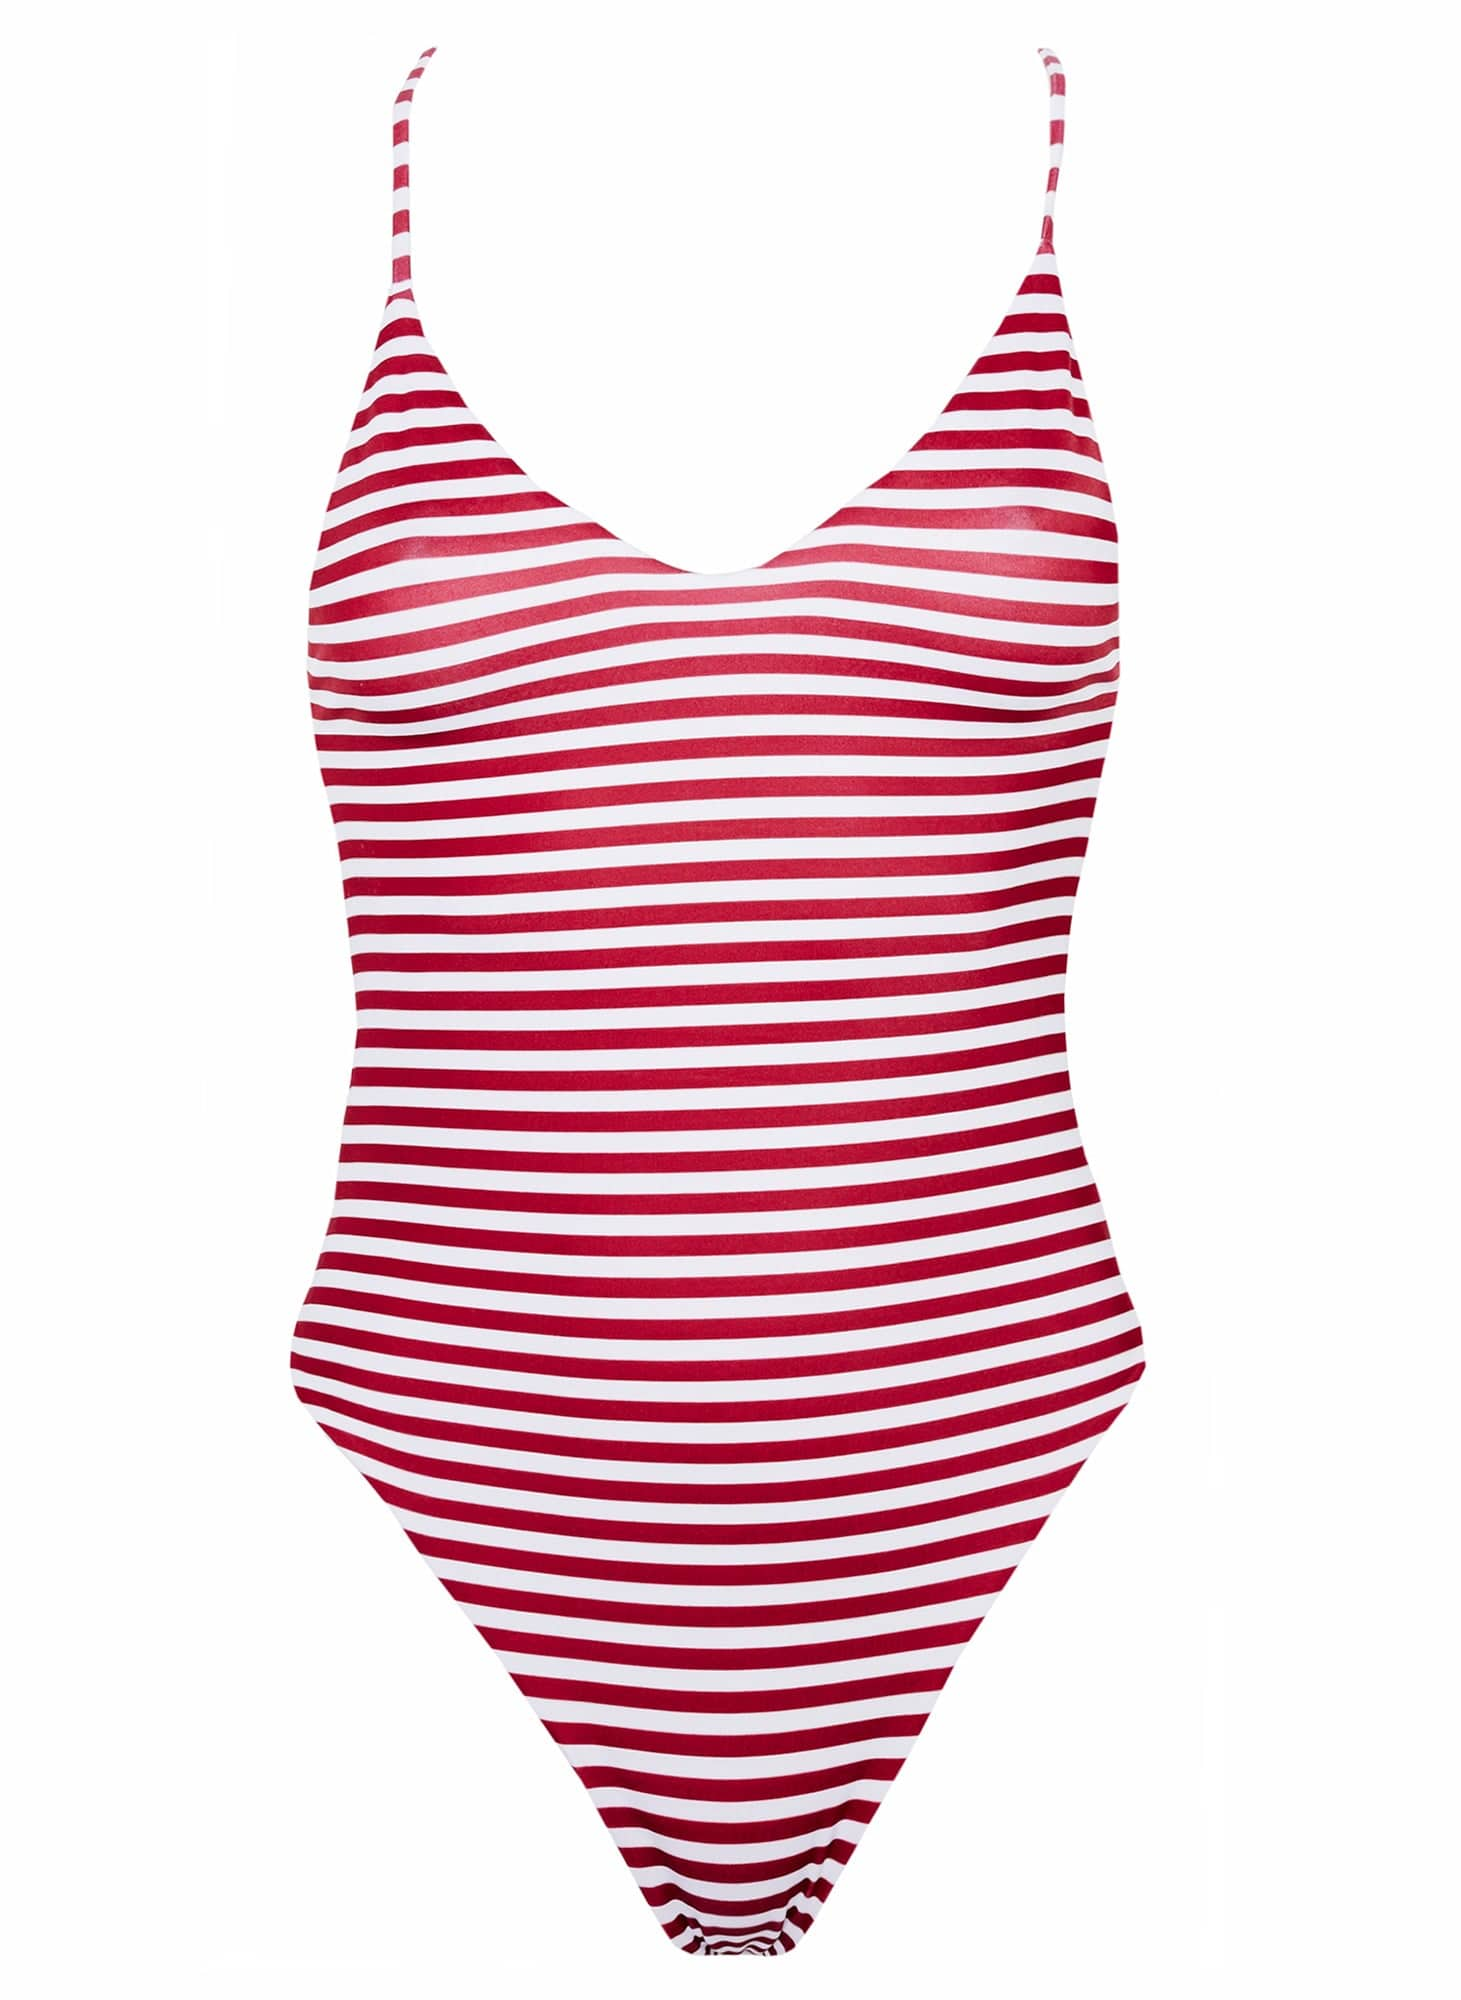 BRIGHTON STRIPE PRINT - JASMINE ONE PIECE - FINAL SALE